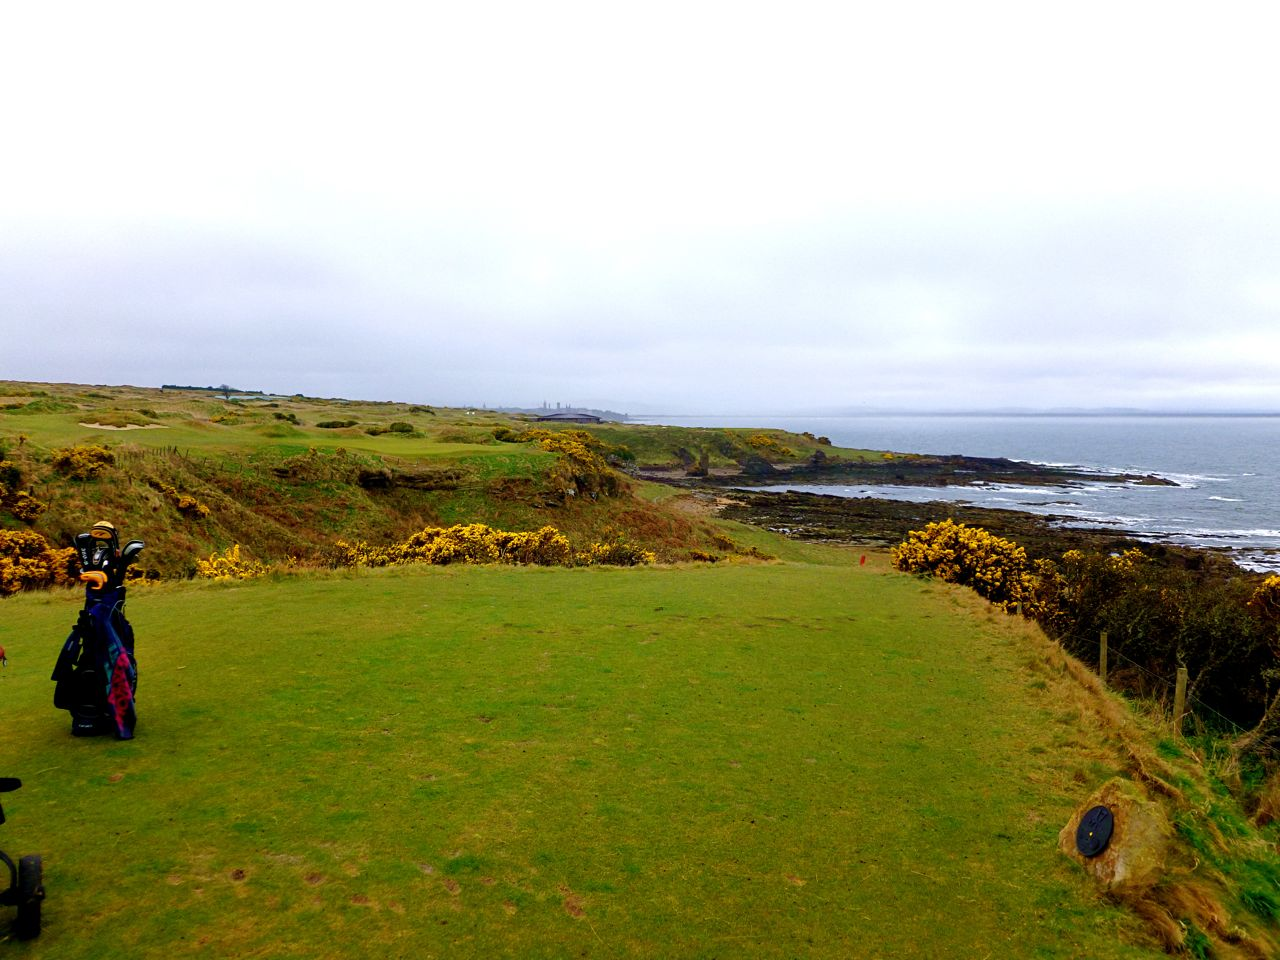 St Andrews Old Course Carnoustie GolfLinks St Andrews Bay - Kittocks